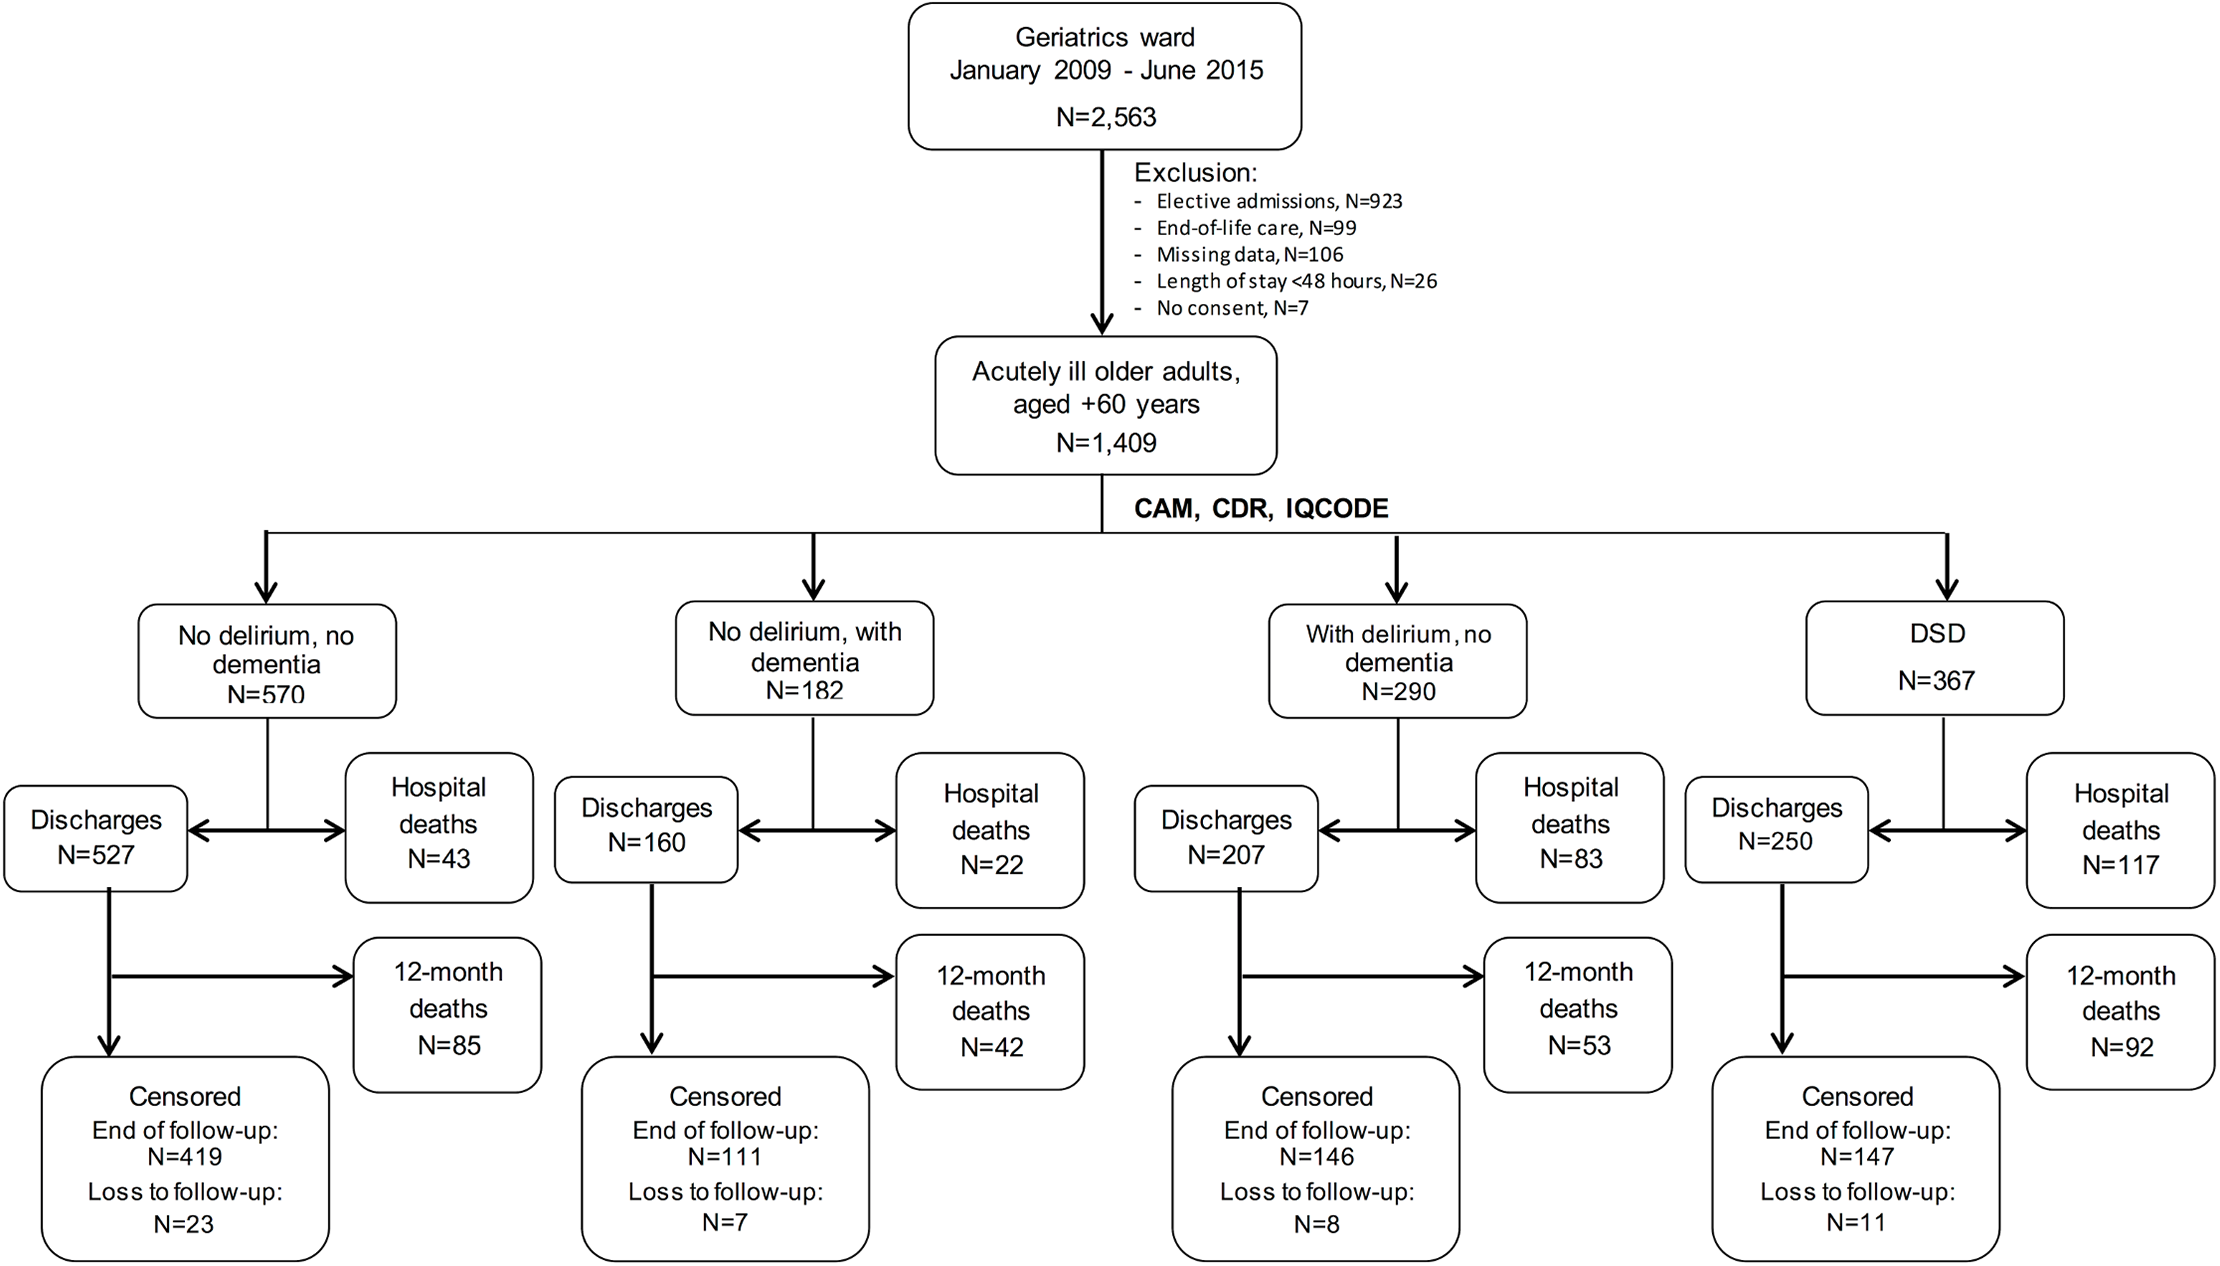 Flowchart of inclusion and follow-up in the study.